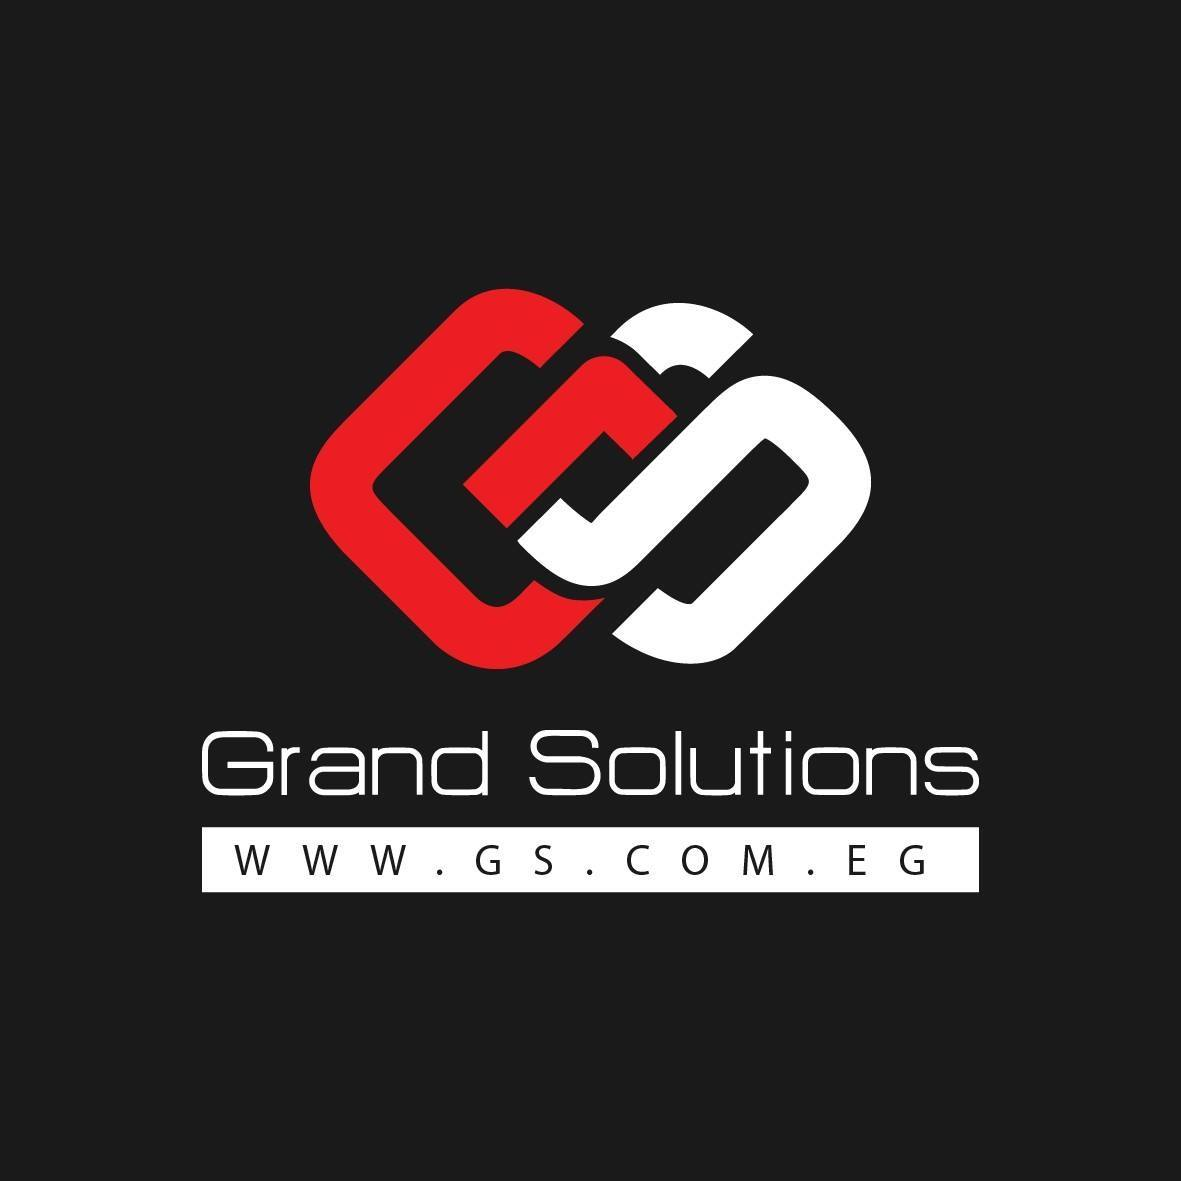 Grand Solutions